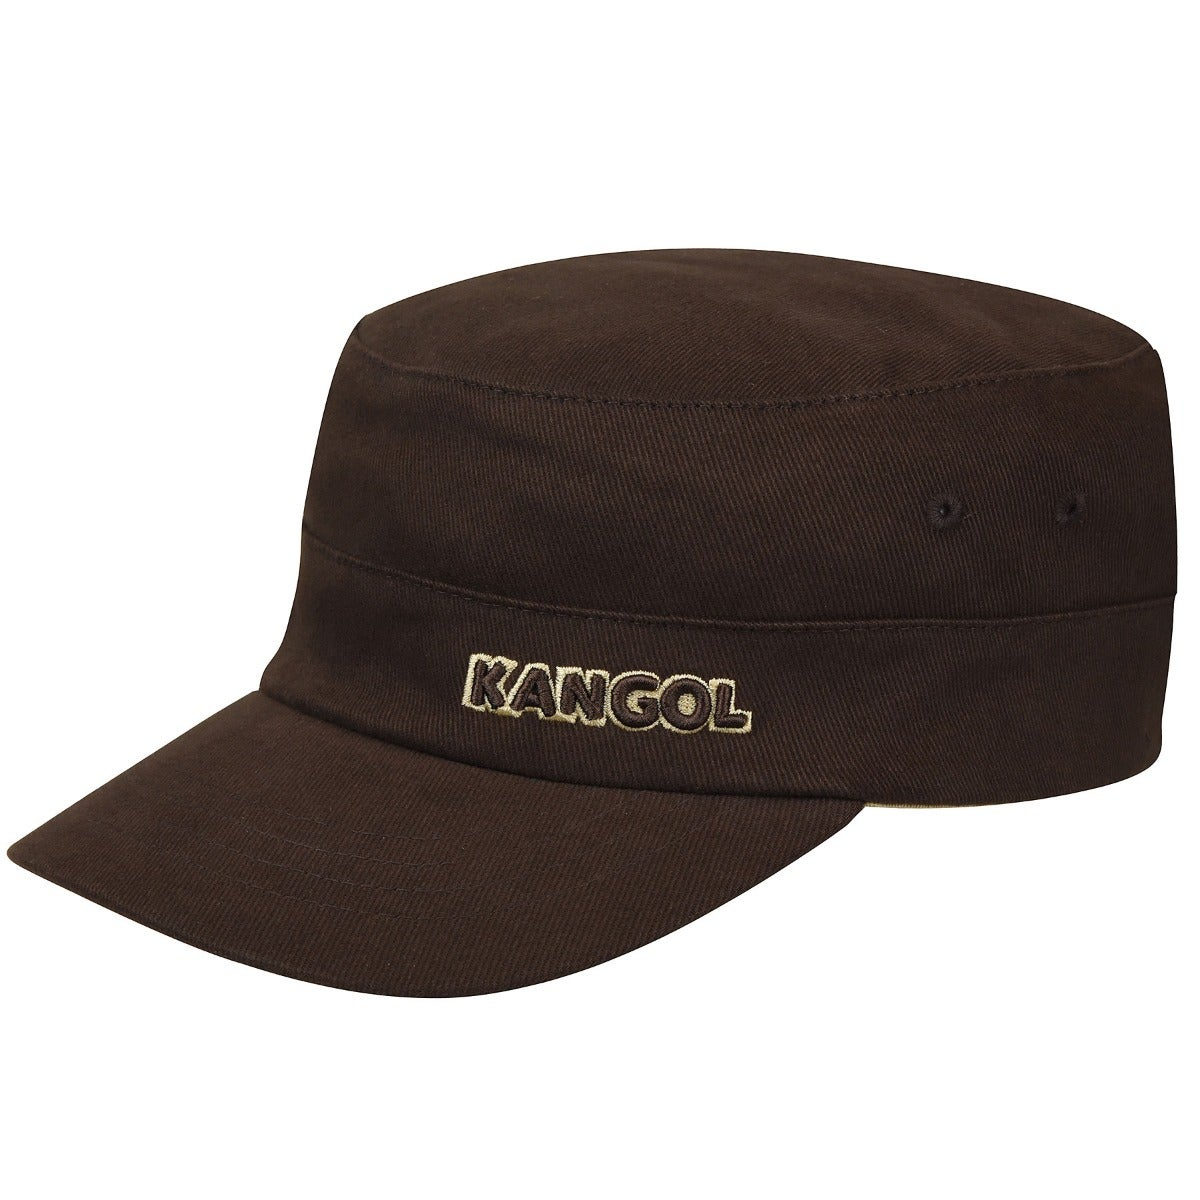 Kangol Cotton Twill Army Cap in Brown